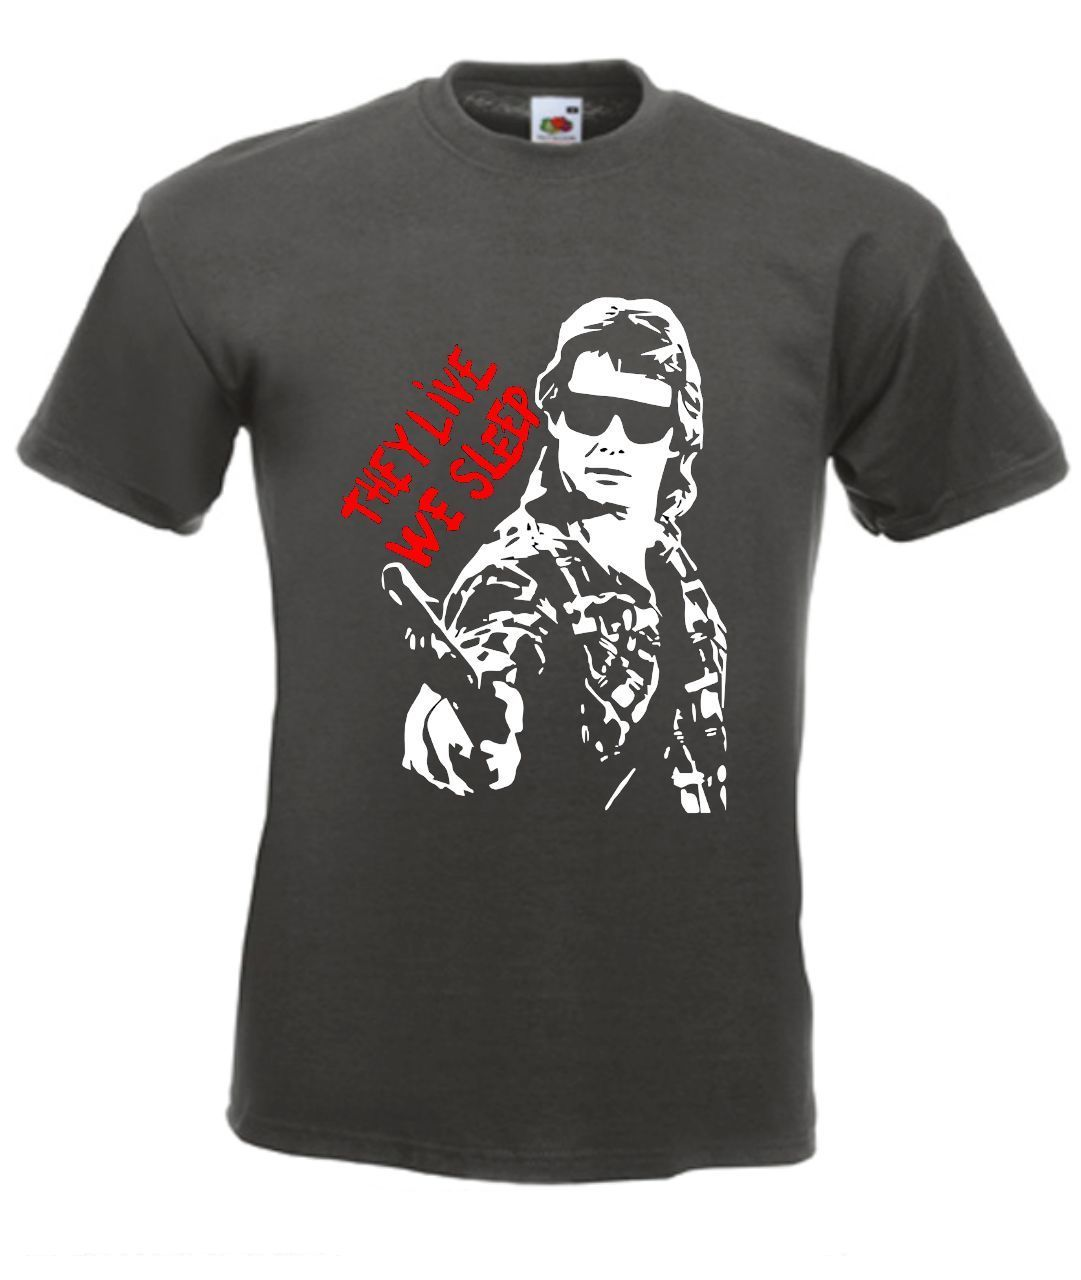 2019 Funny They Live Roddy Piper Retro John Carpenter Movie T Shirt  Tee Hoodie